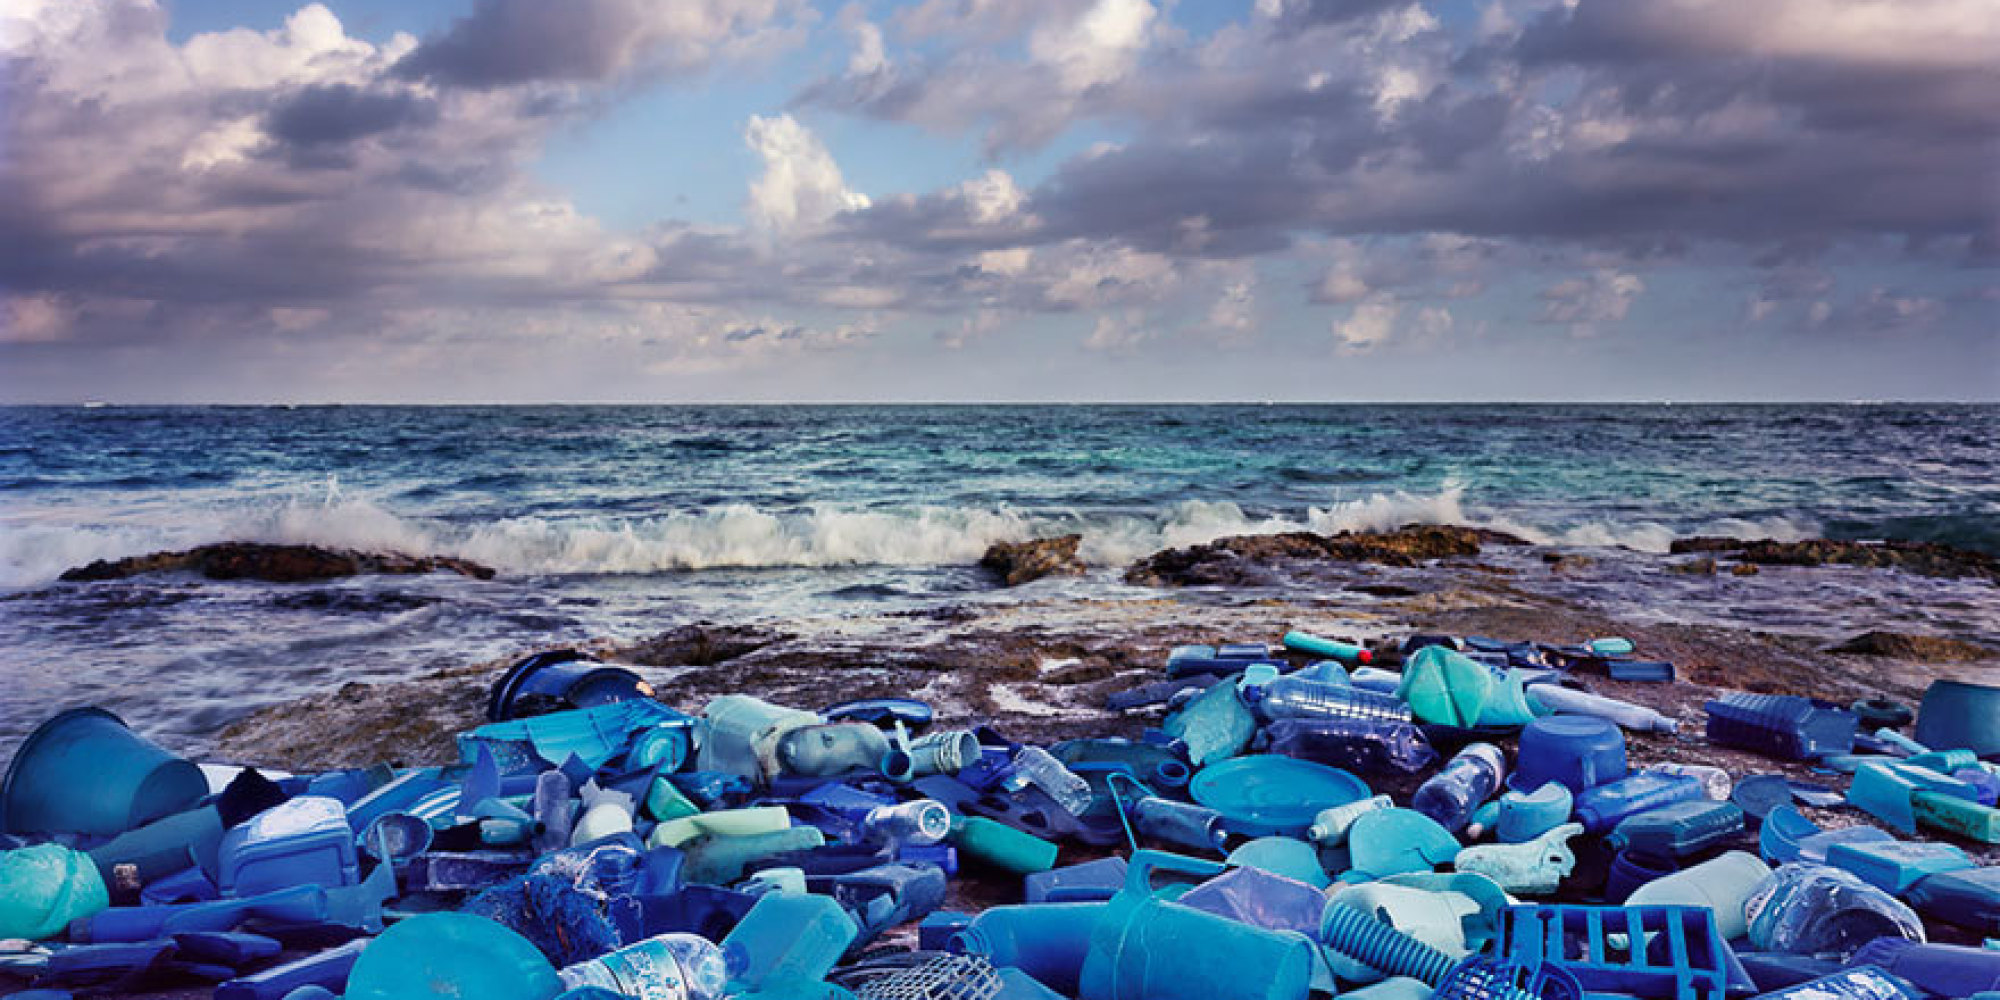 a discussion about the ocean pollution and human wastes